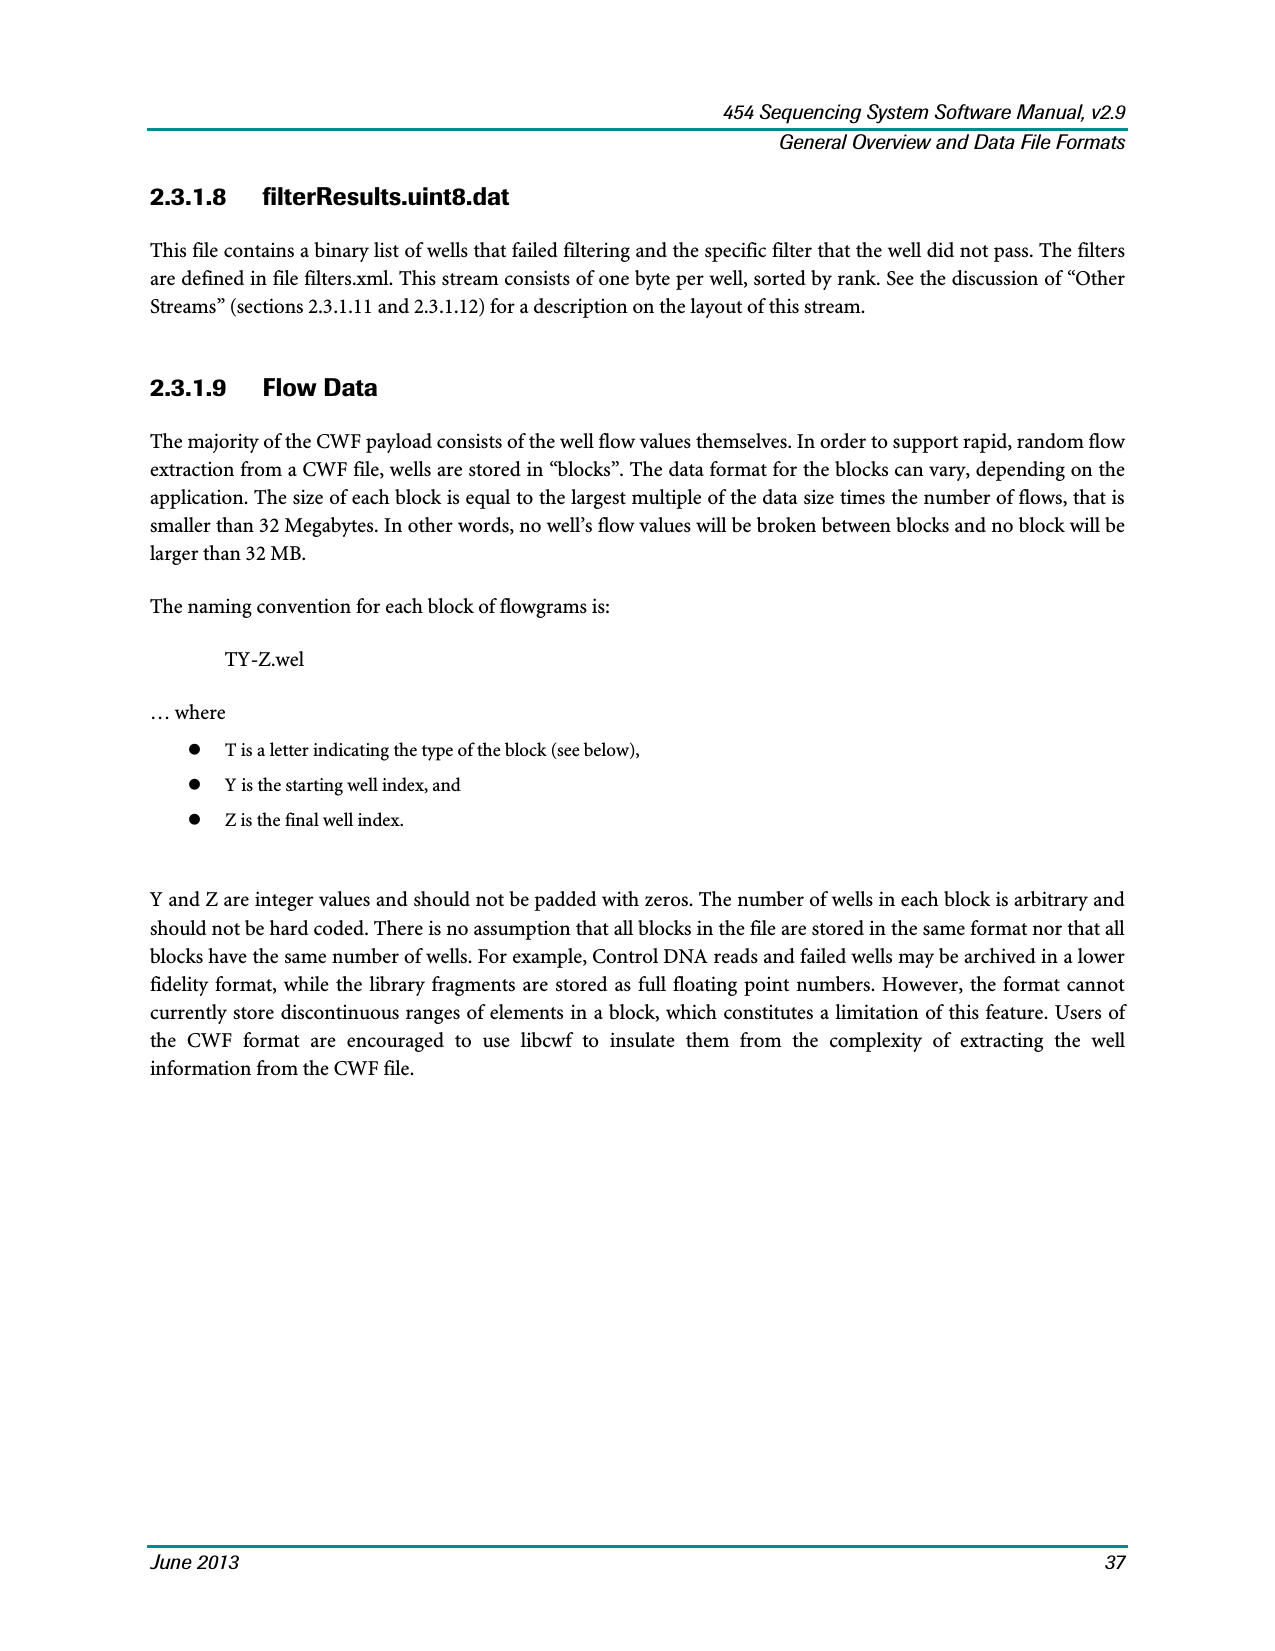 USM-00058.09_454SeqSys_SWManual-v2.9_Overview-37.png